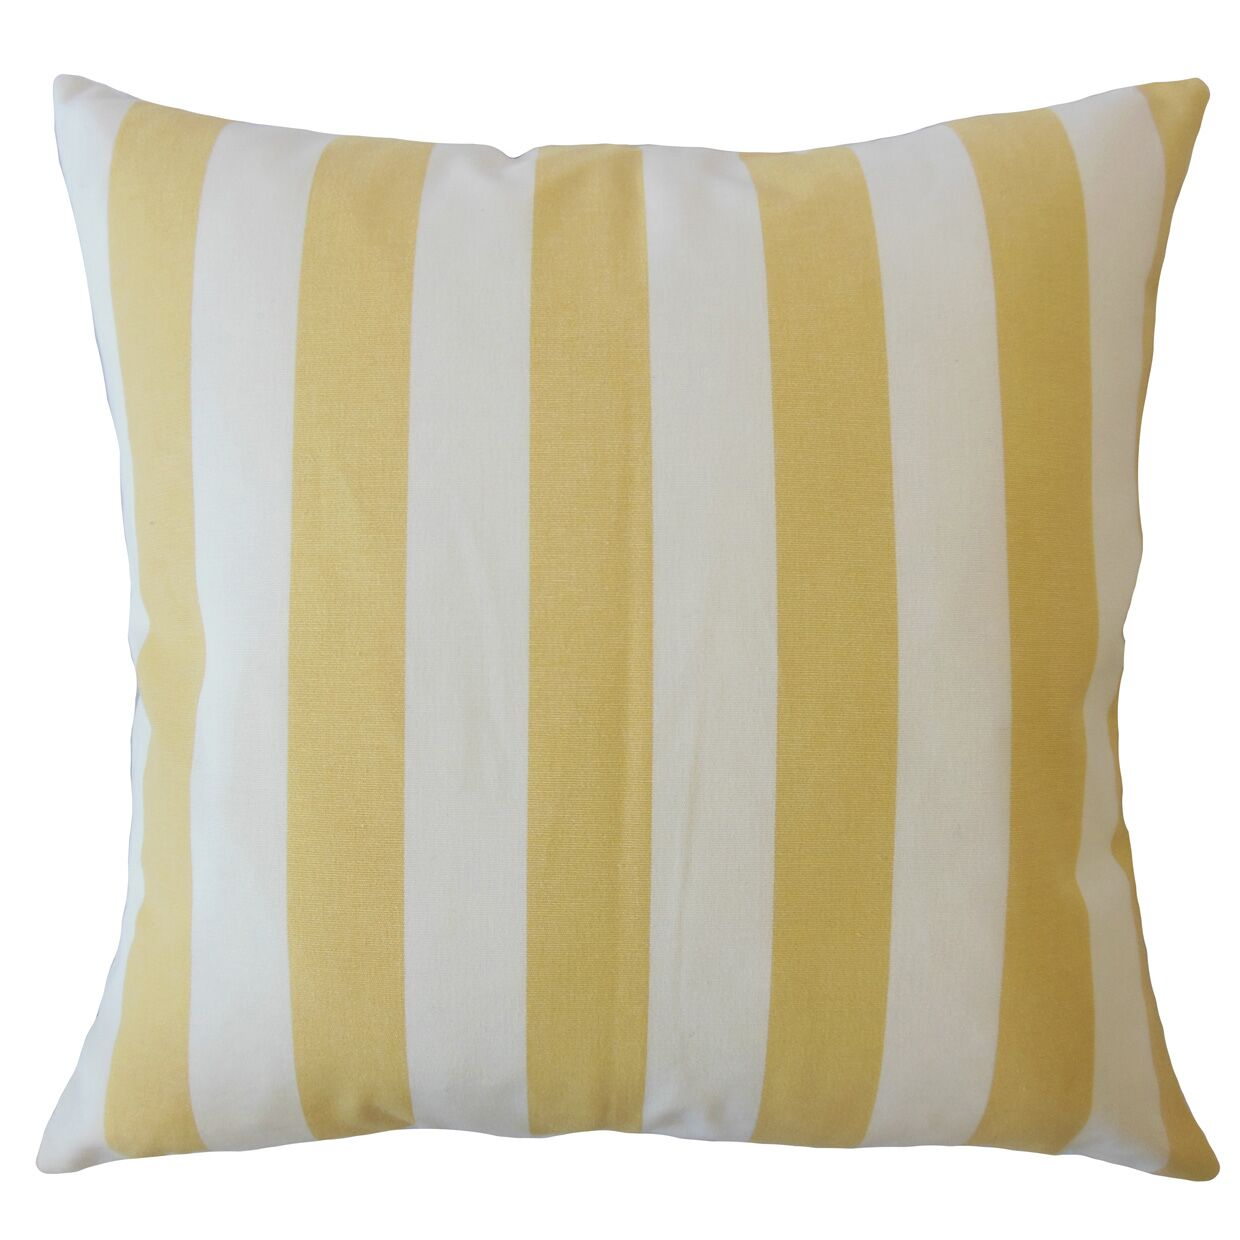 Promfret Striped Down Filled 100% Cotton Throw Pillow Size: 24